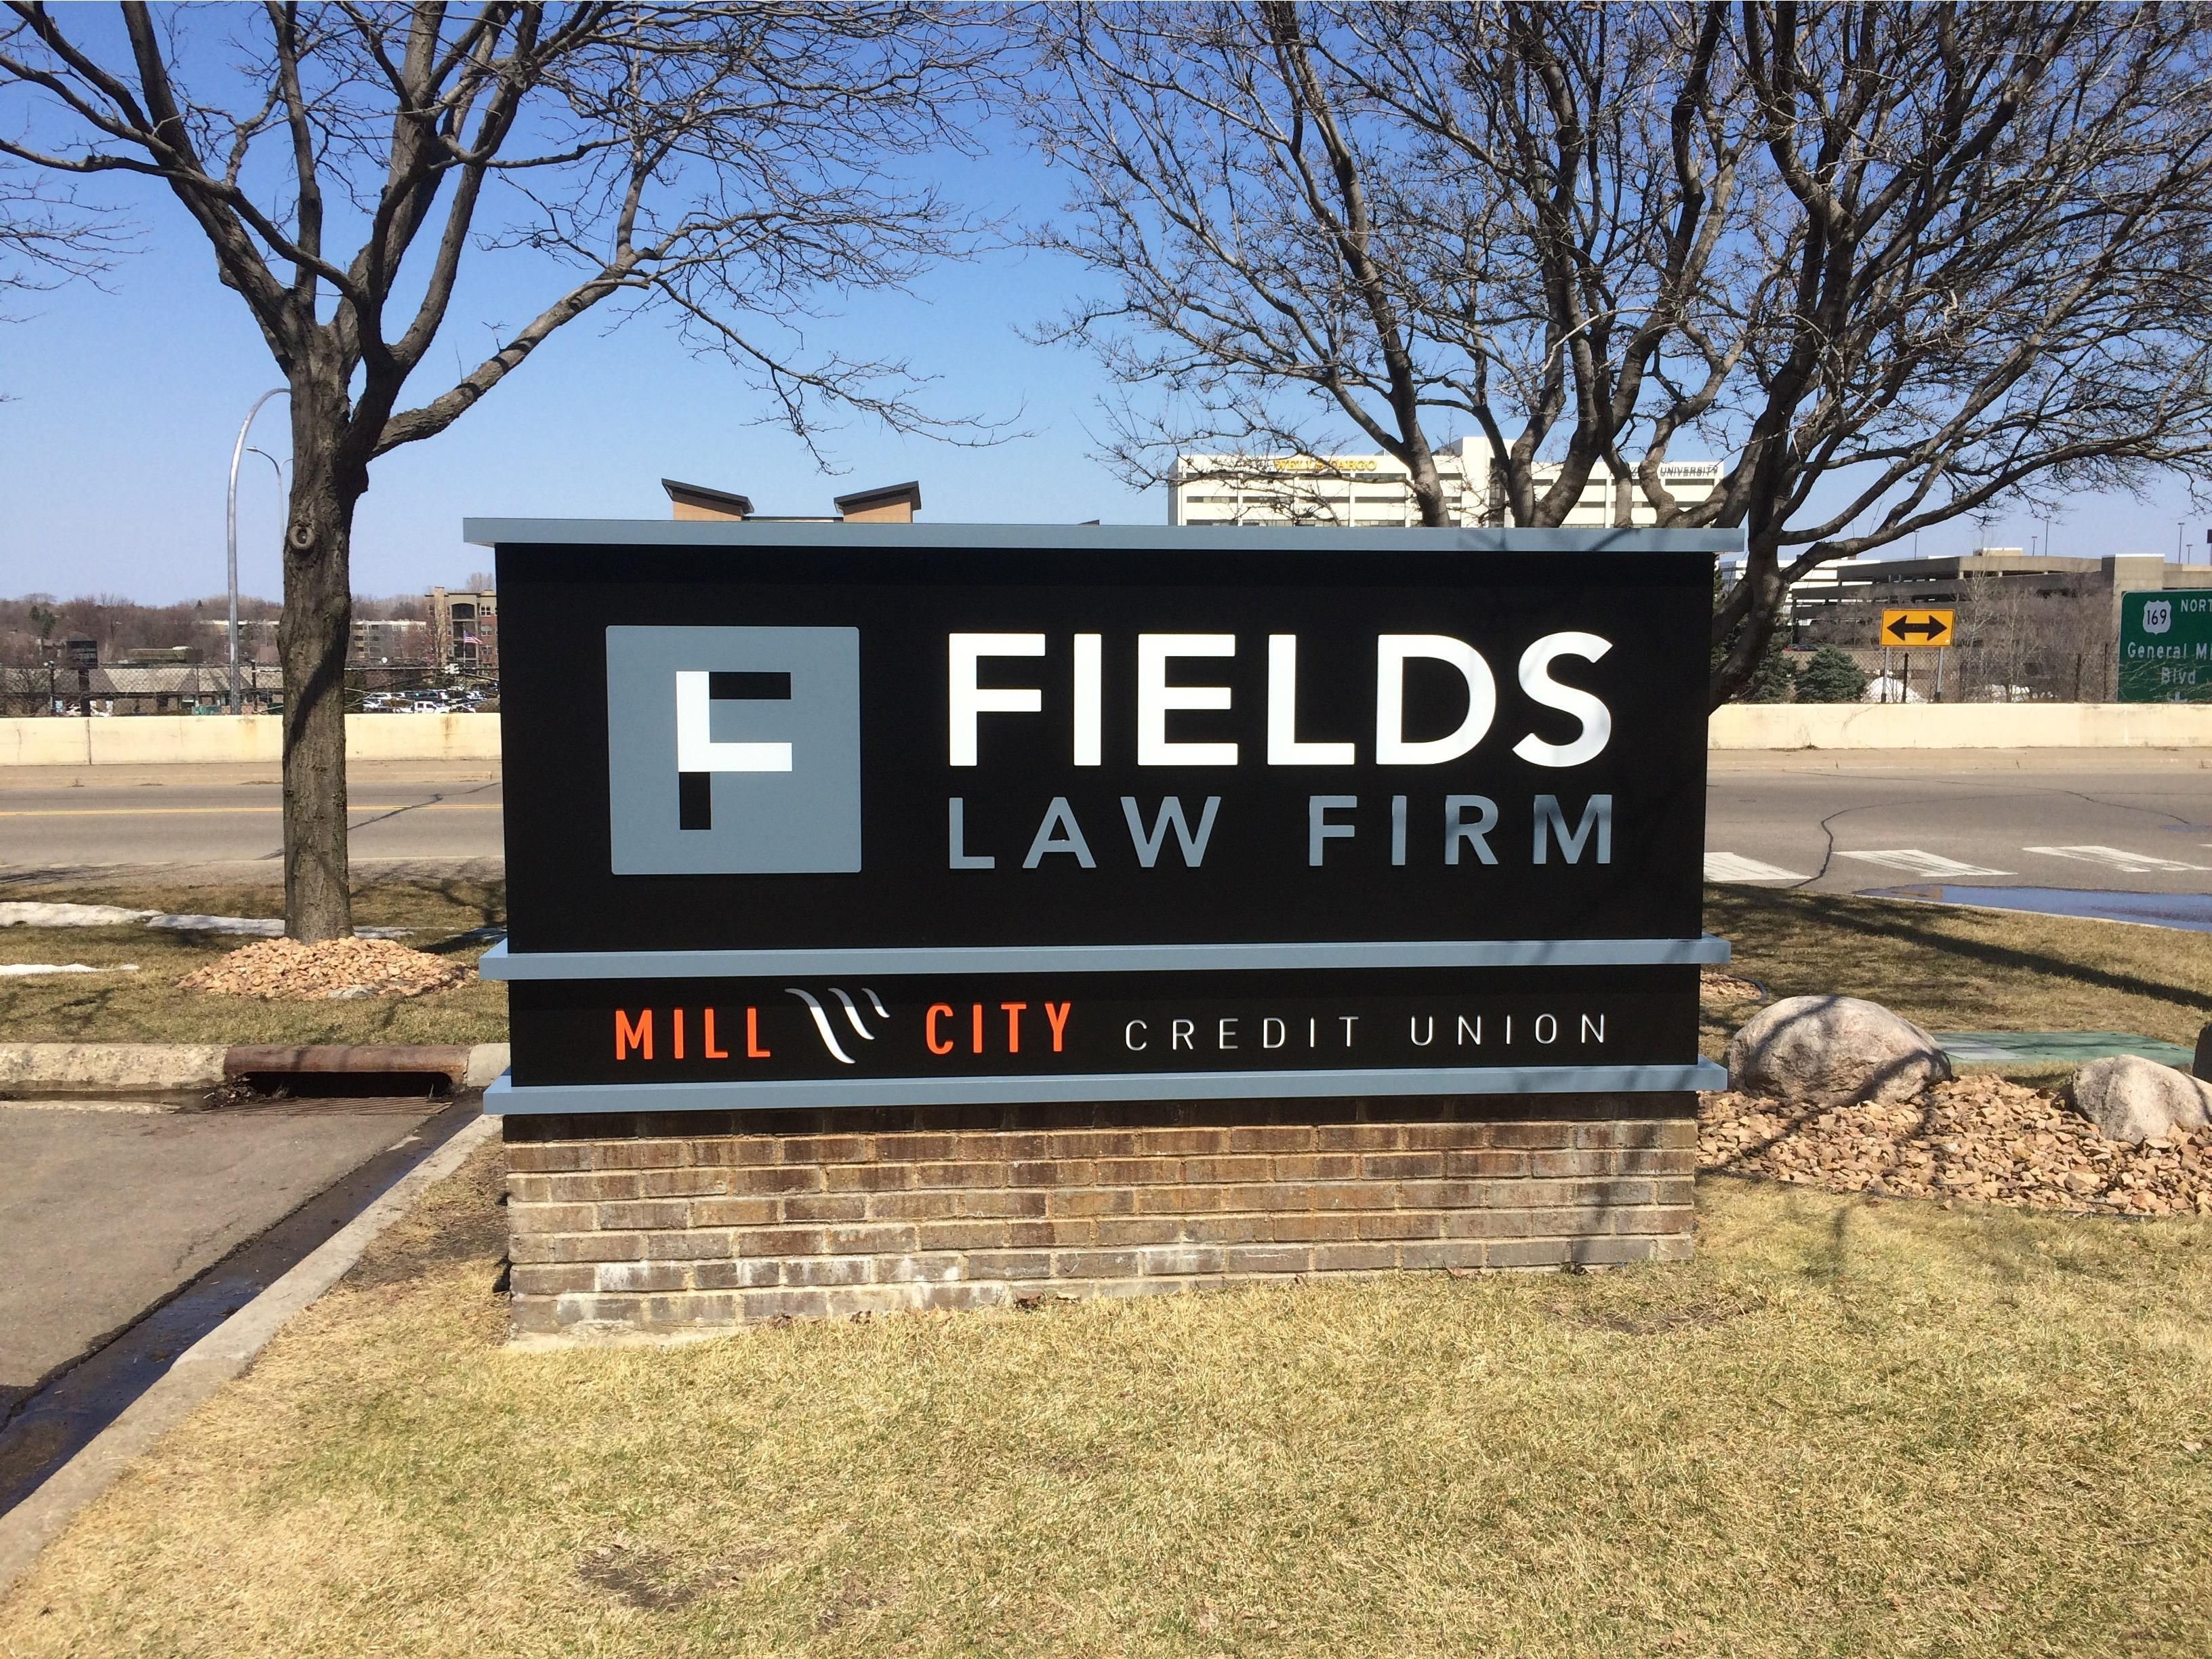 Fields Law Firm image 1